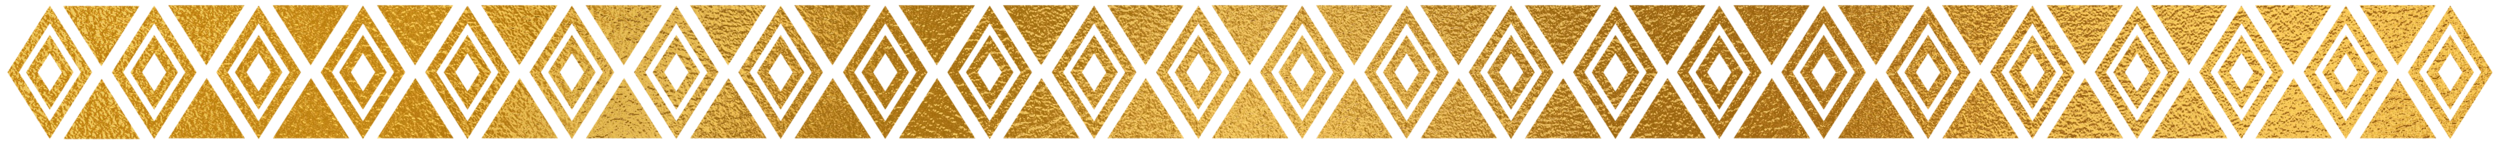 TRIBAL BORDER cropped.png